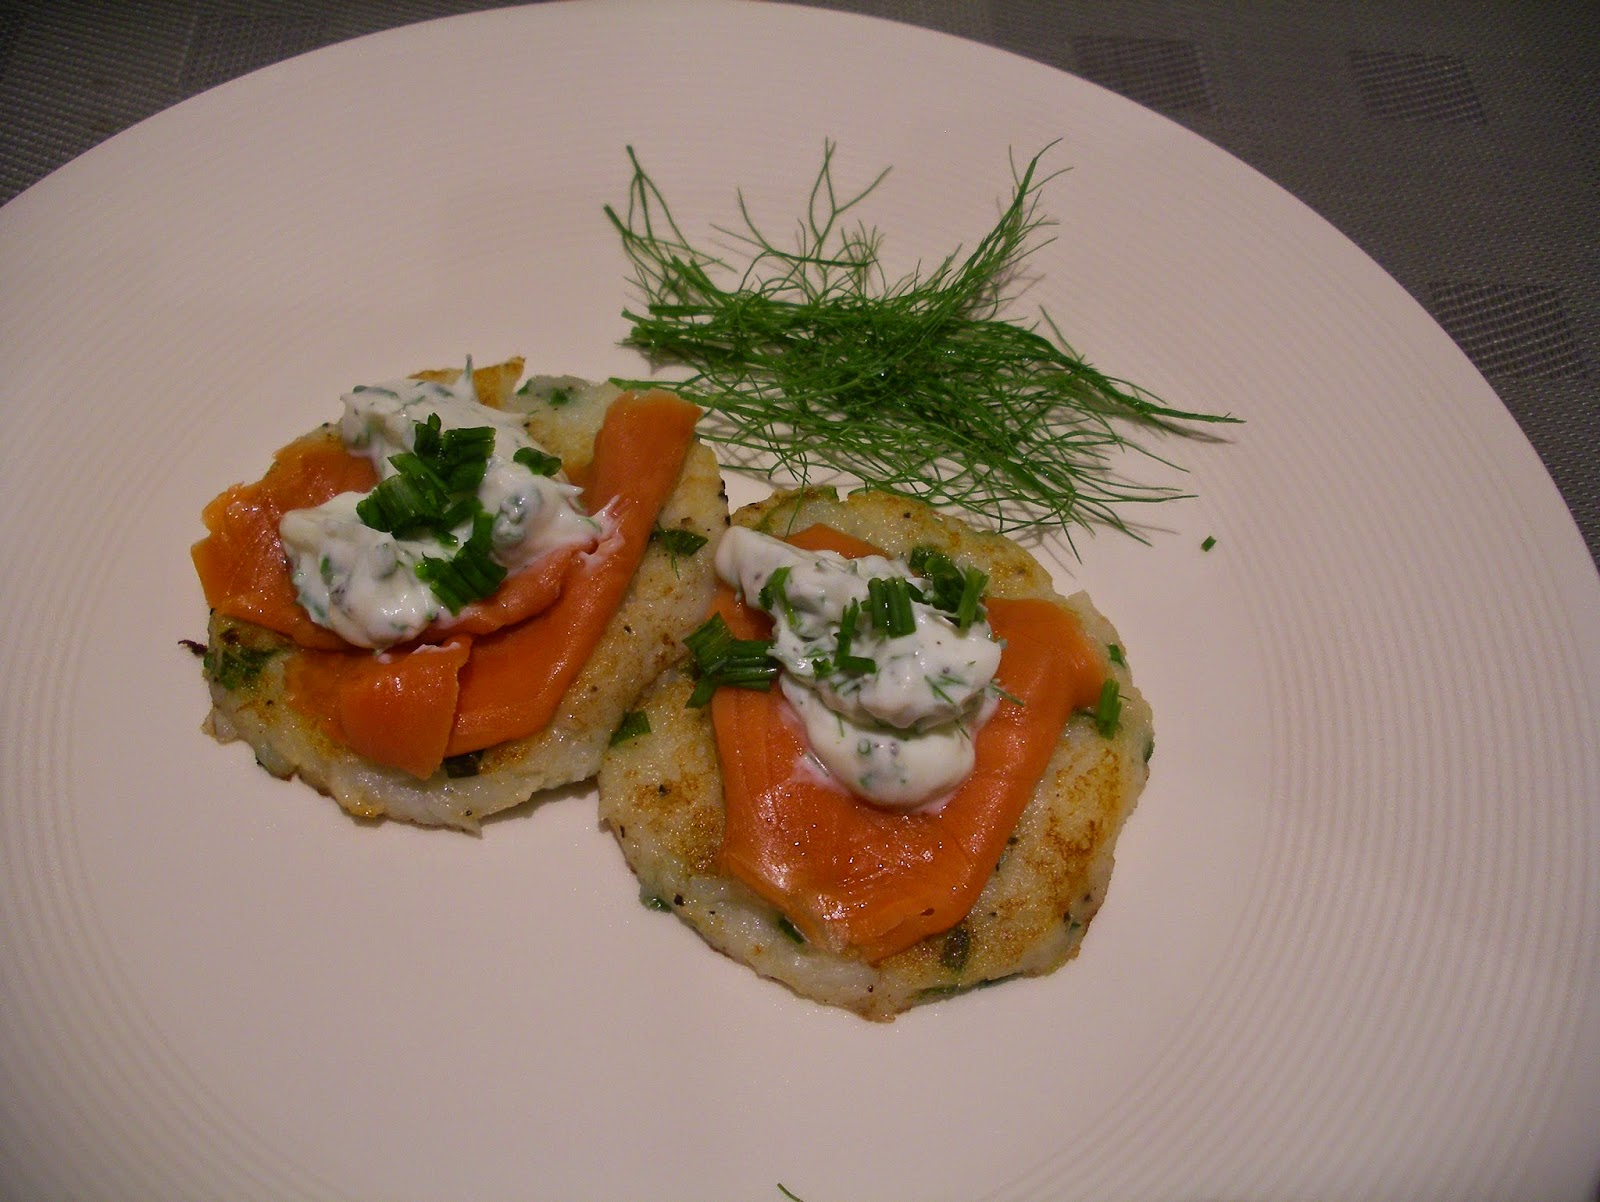 ... IN THE SAND: Potato cakes with smoked salmon and herb crème fraîche